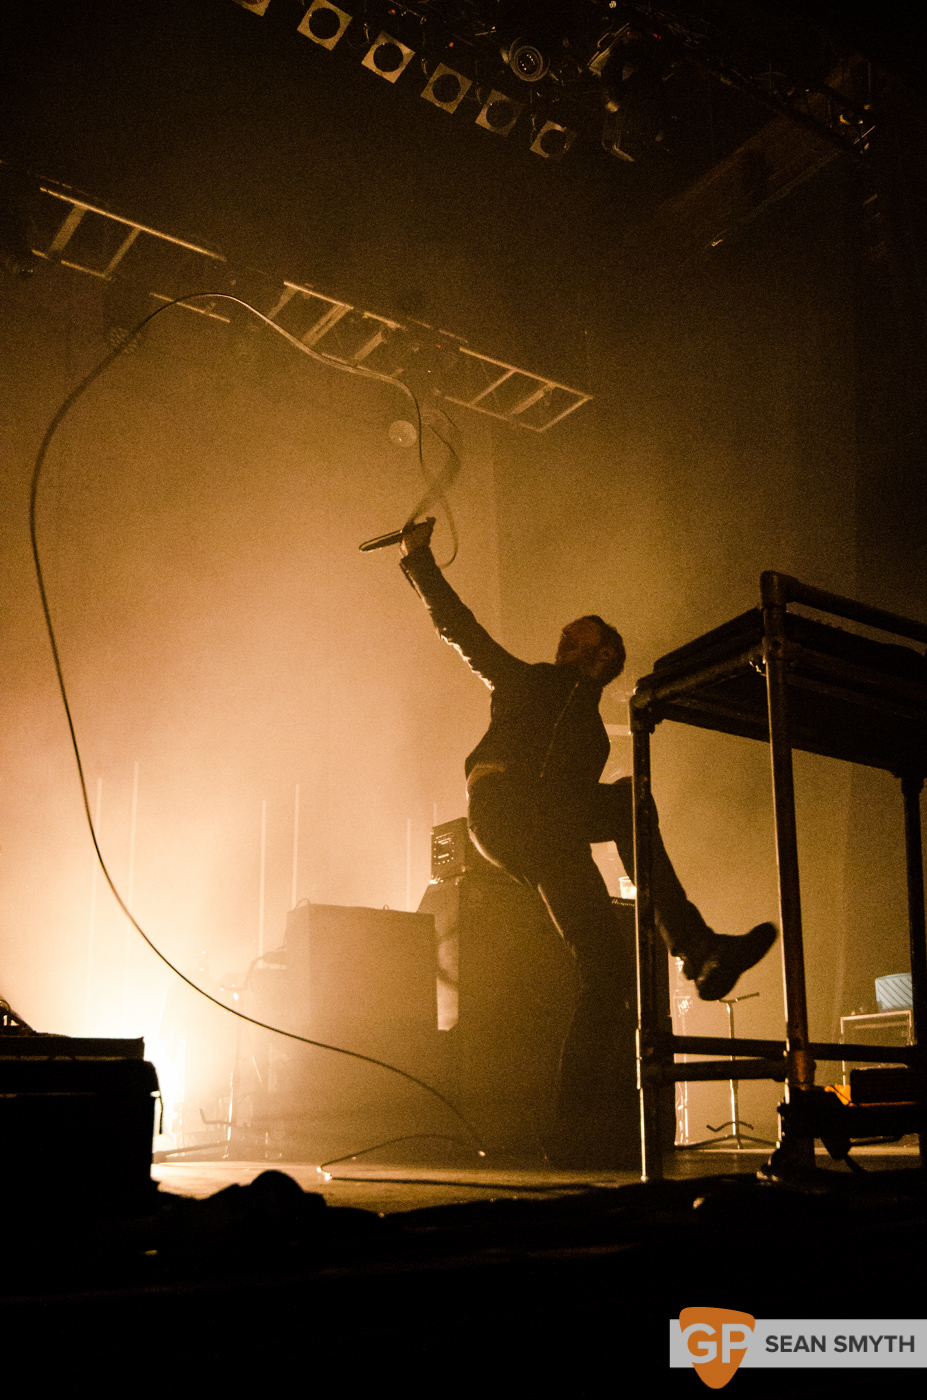 editors-at-the-olympia-theatre-by-sean-smyth-10-10-15-20-of-28_21469302603_o